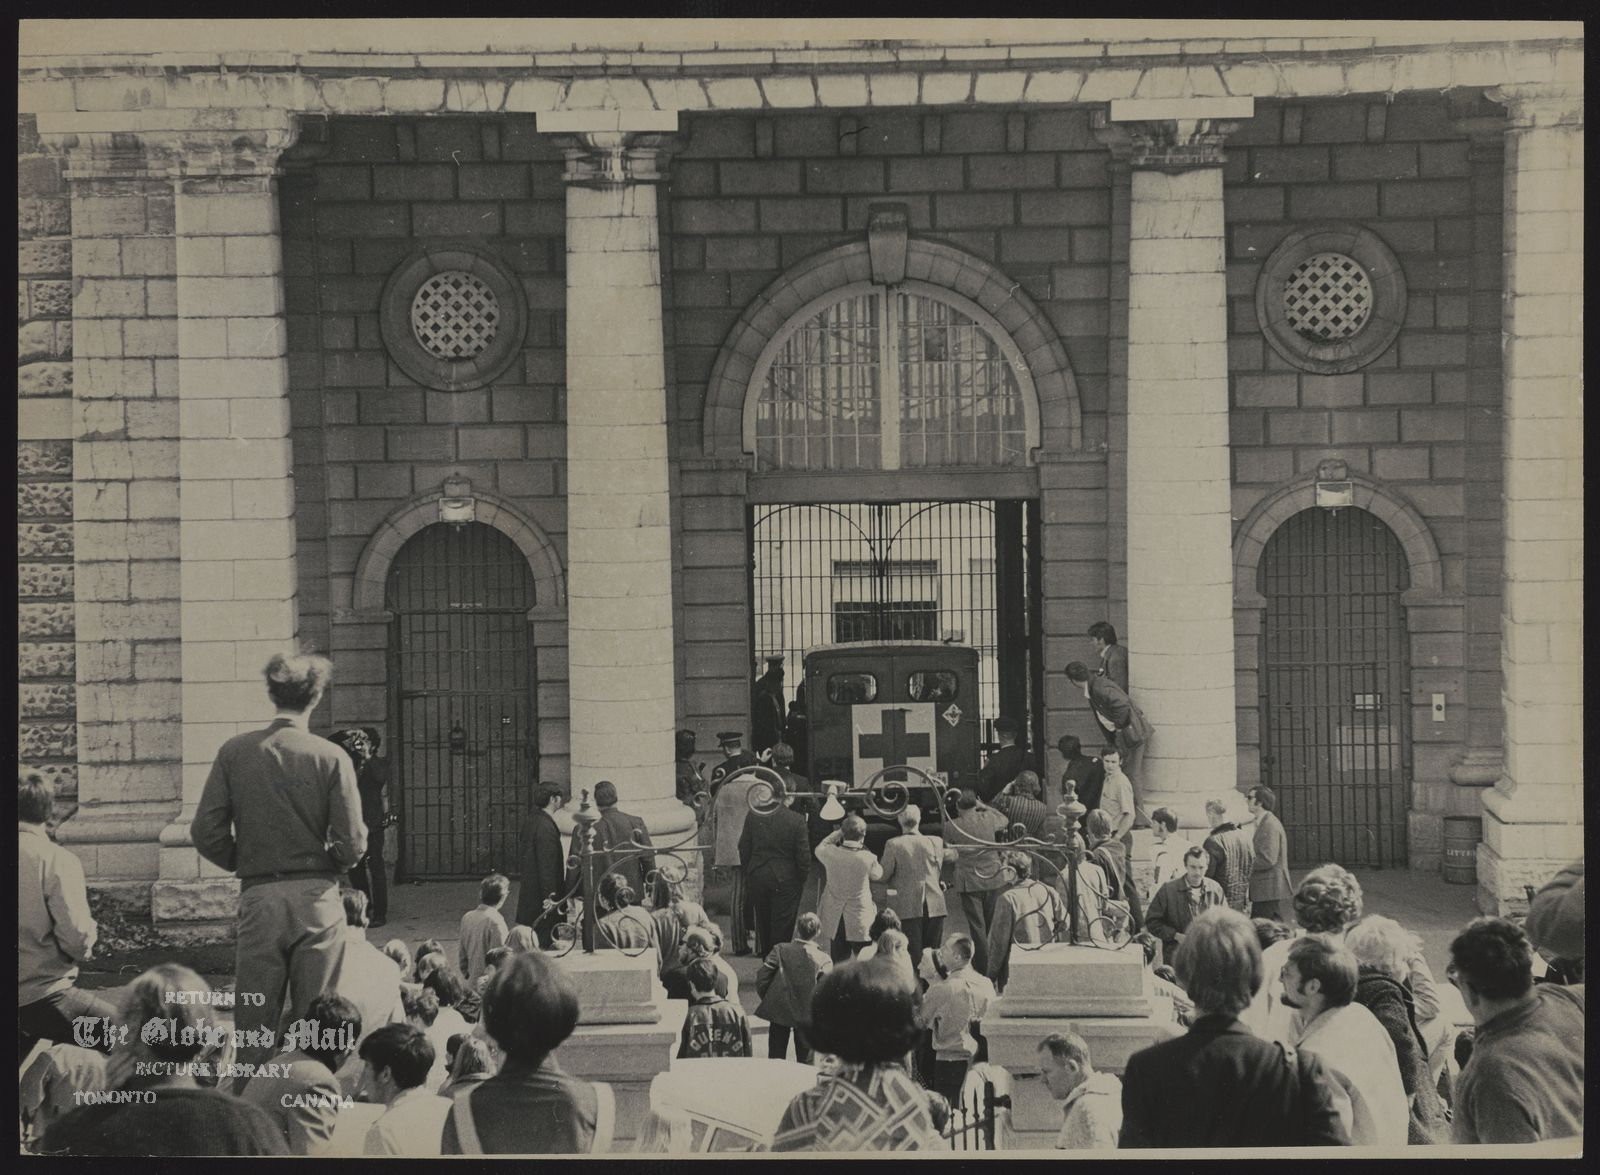 KINGSTON PENITENTIARY (Ontario) (Scene in front of pen during riot)